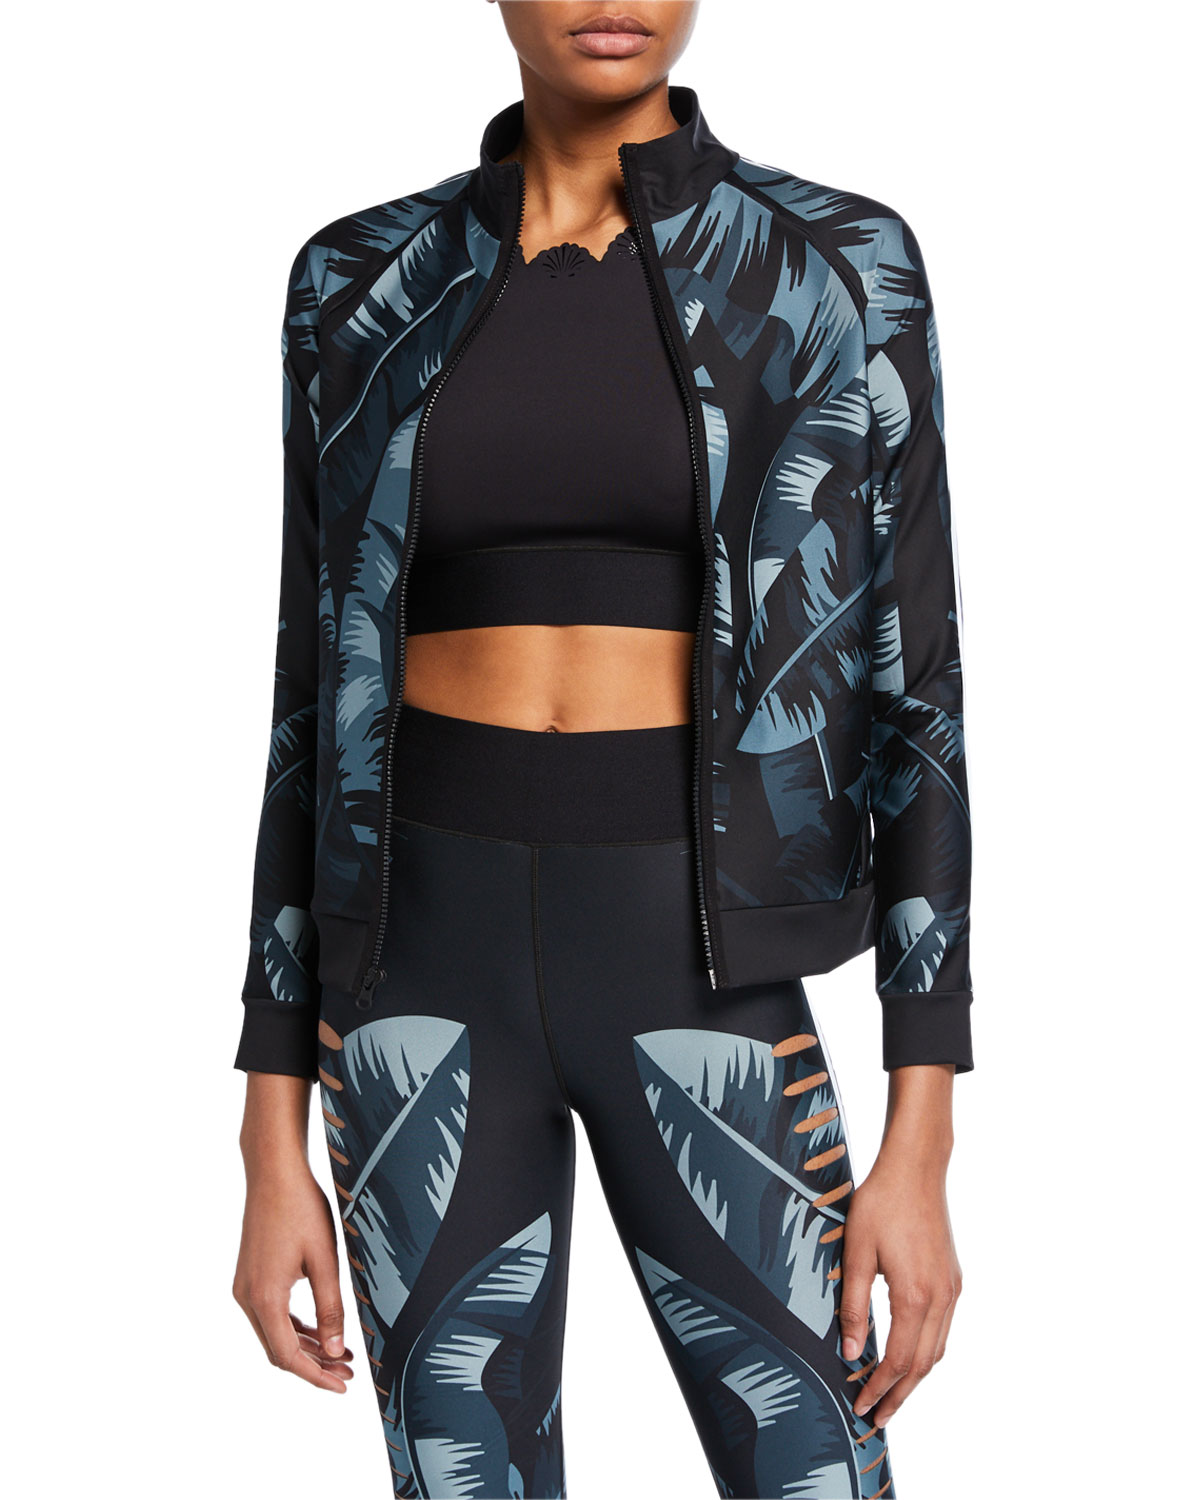 Ultracor Jackets ATOMIC HAVANA PRINTED JACKET